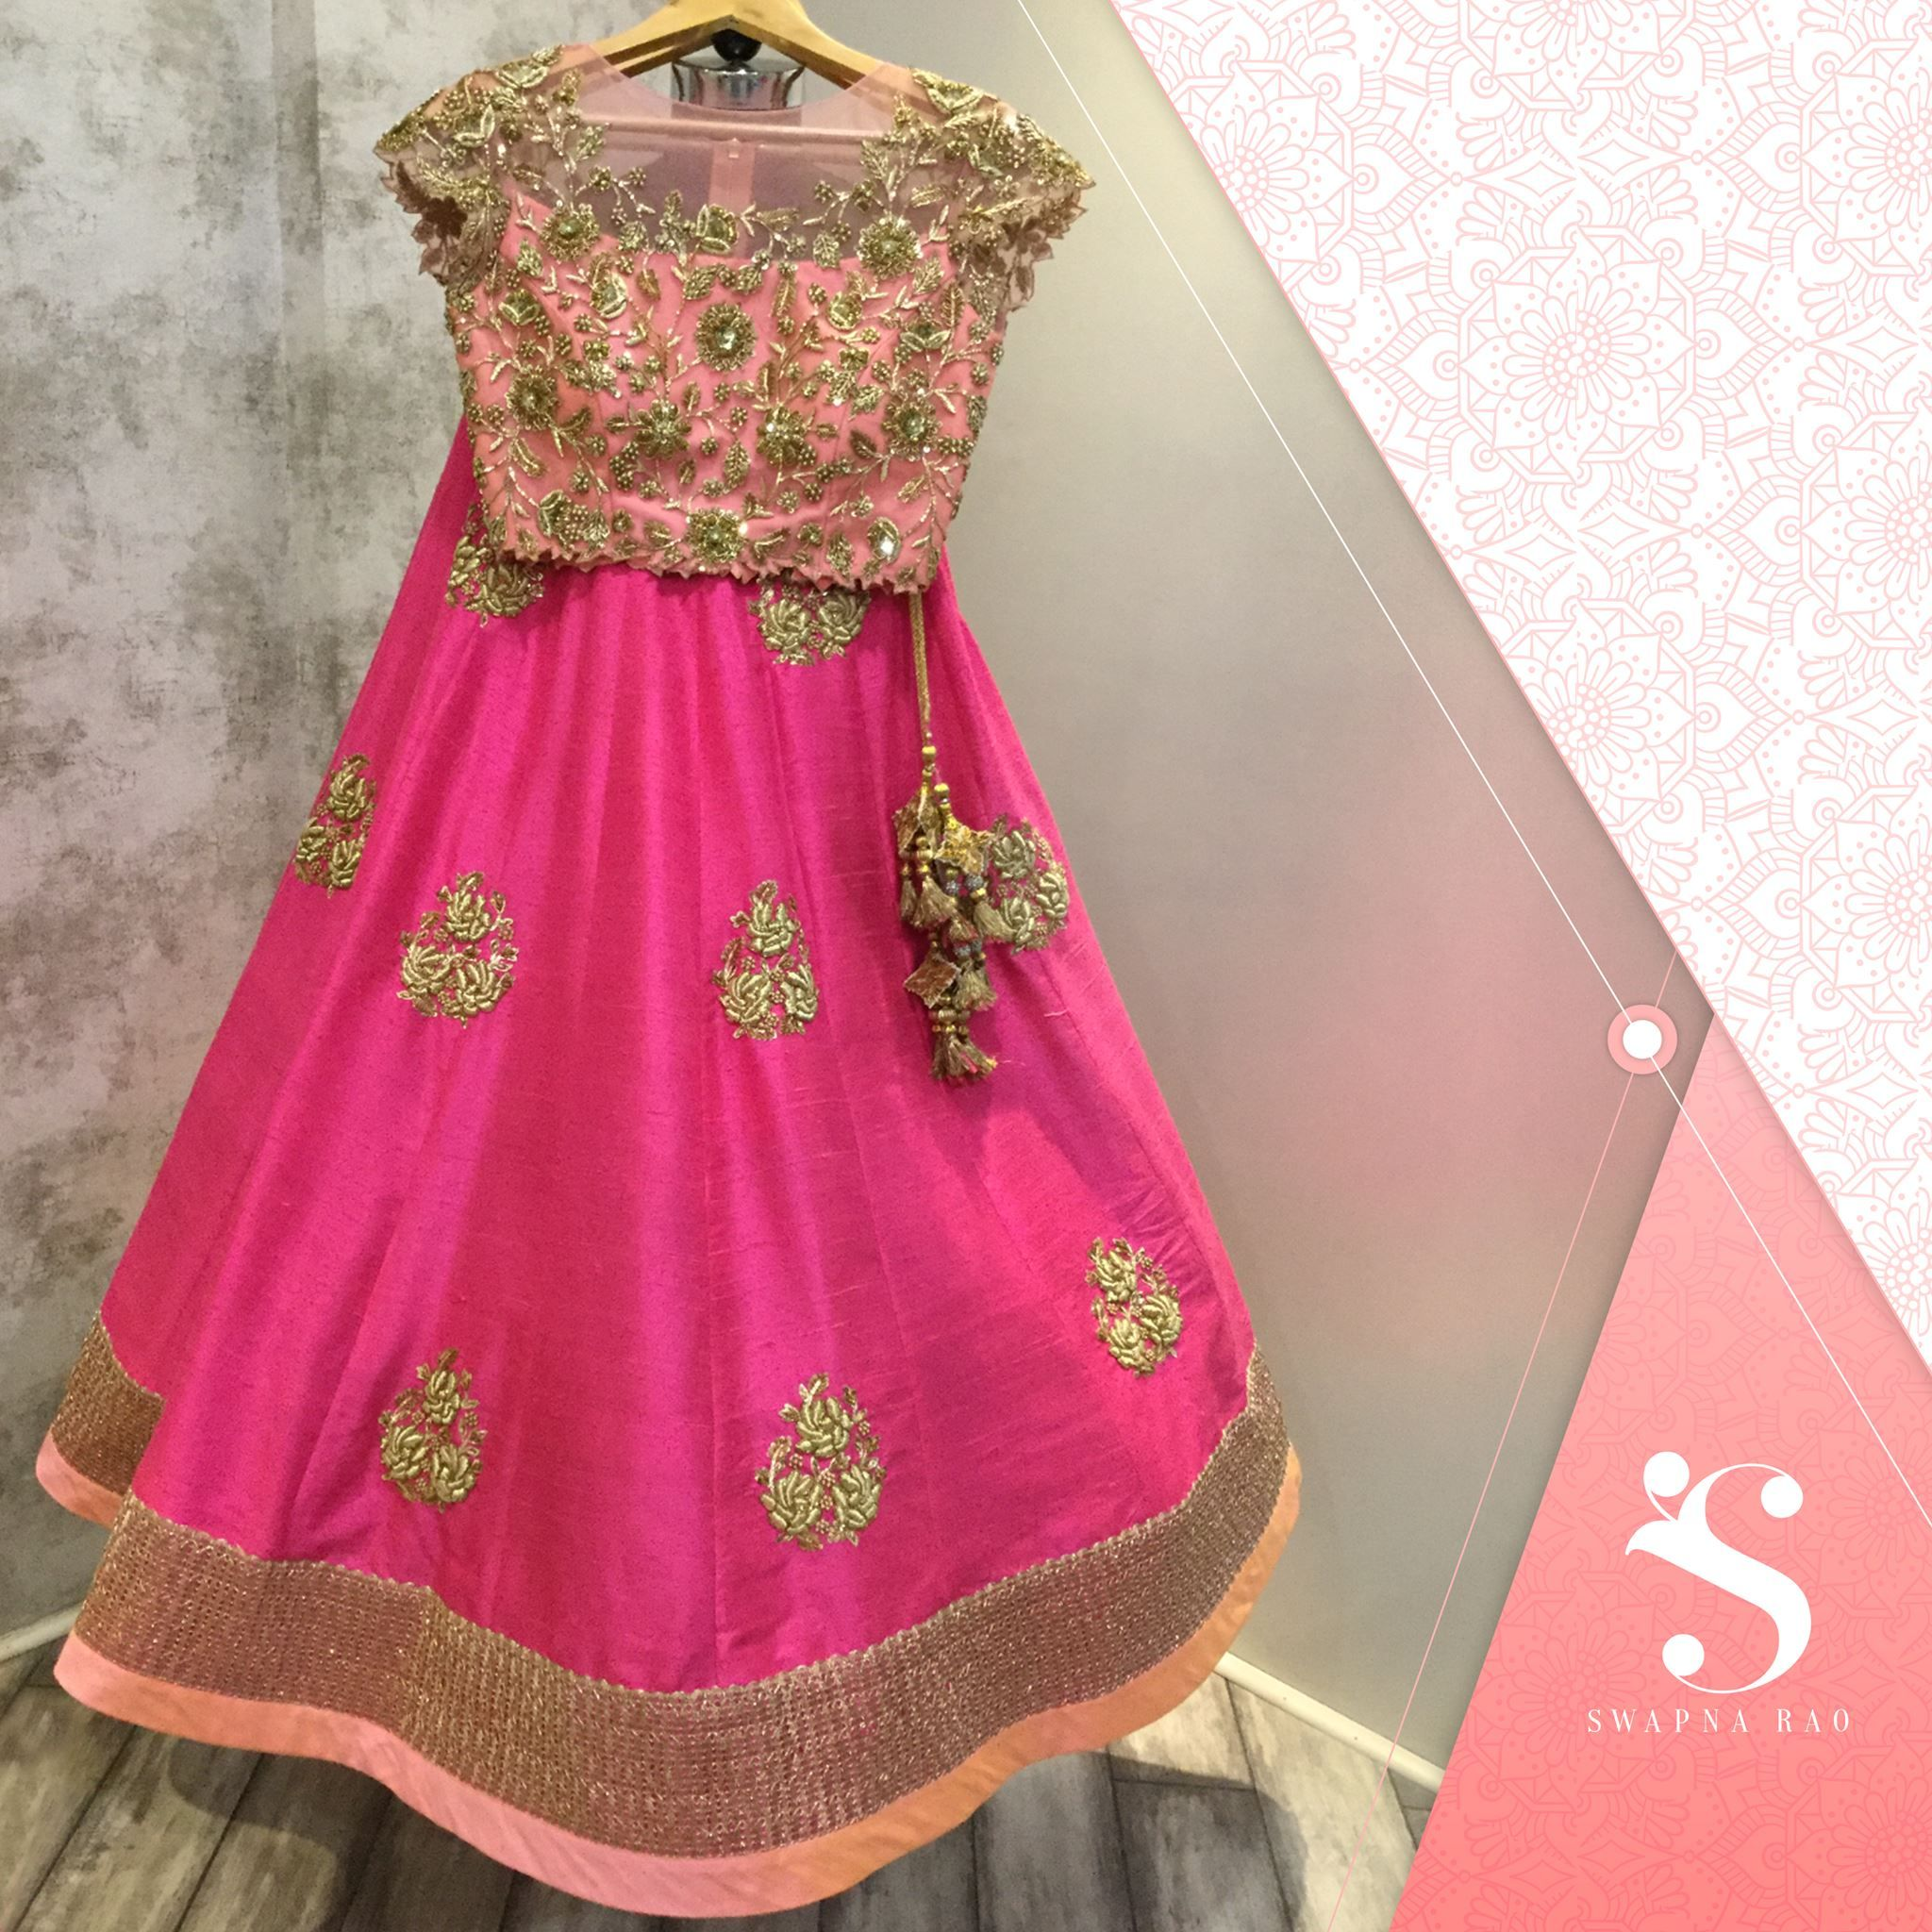 A soothing pink crop top and lehanga for summer occasions swapnarao ...